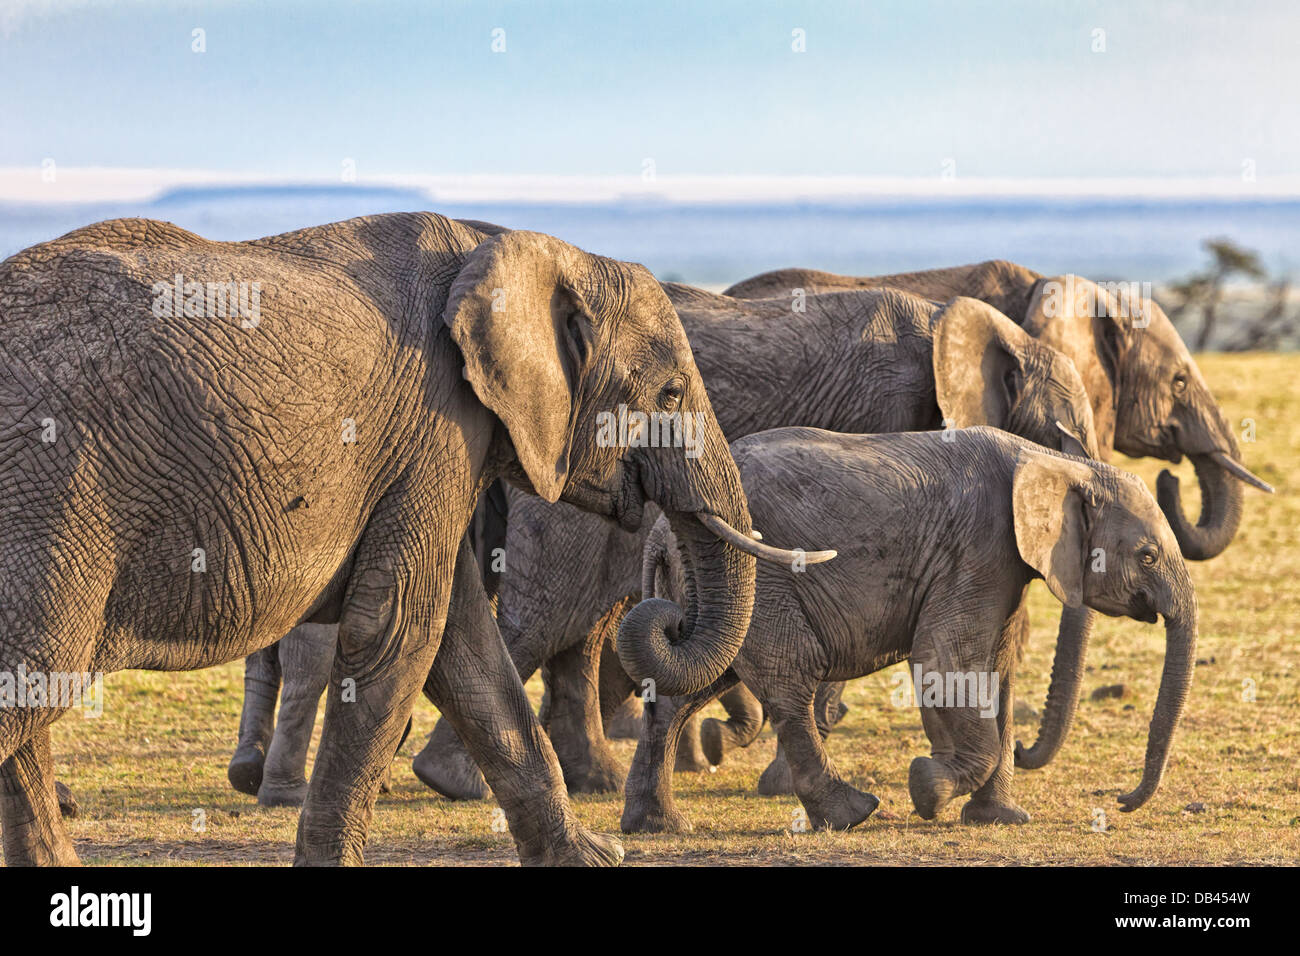 African Elephants Herd peacefully walking through the masai mara, in Kenya, Africa - Stock Image